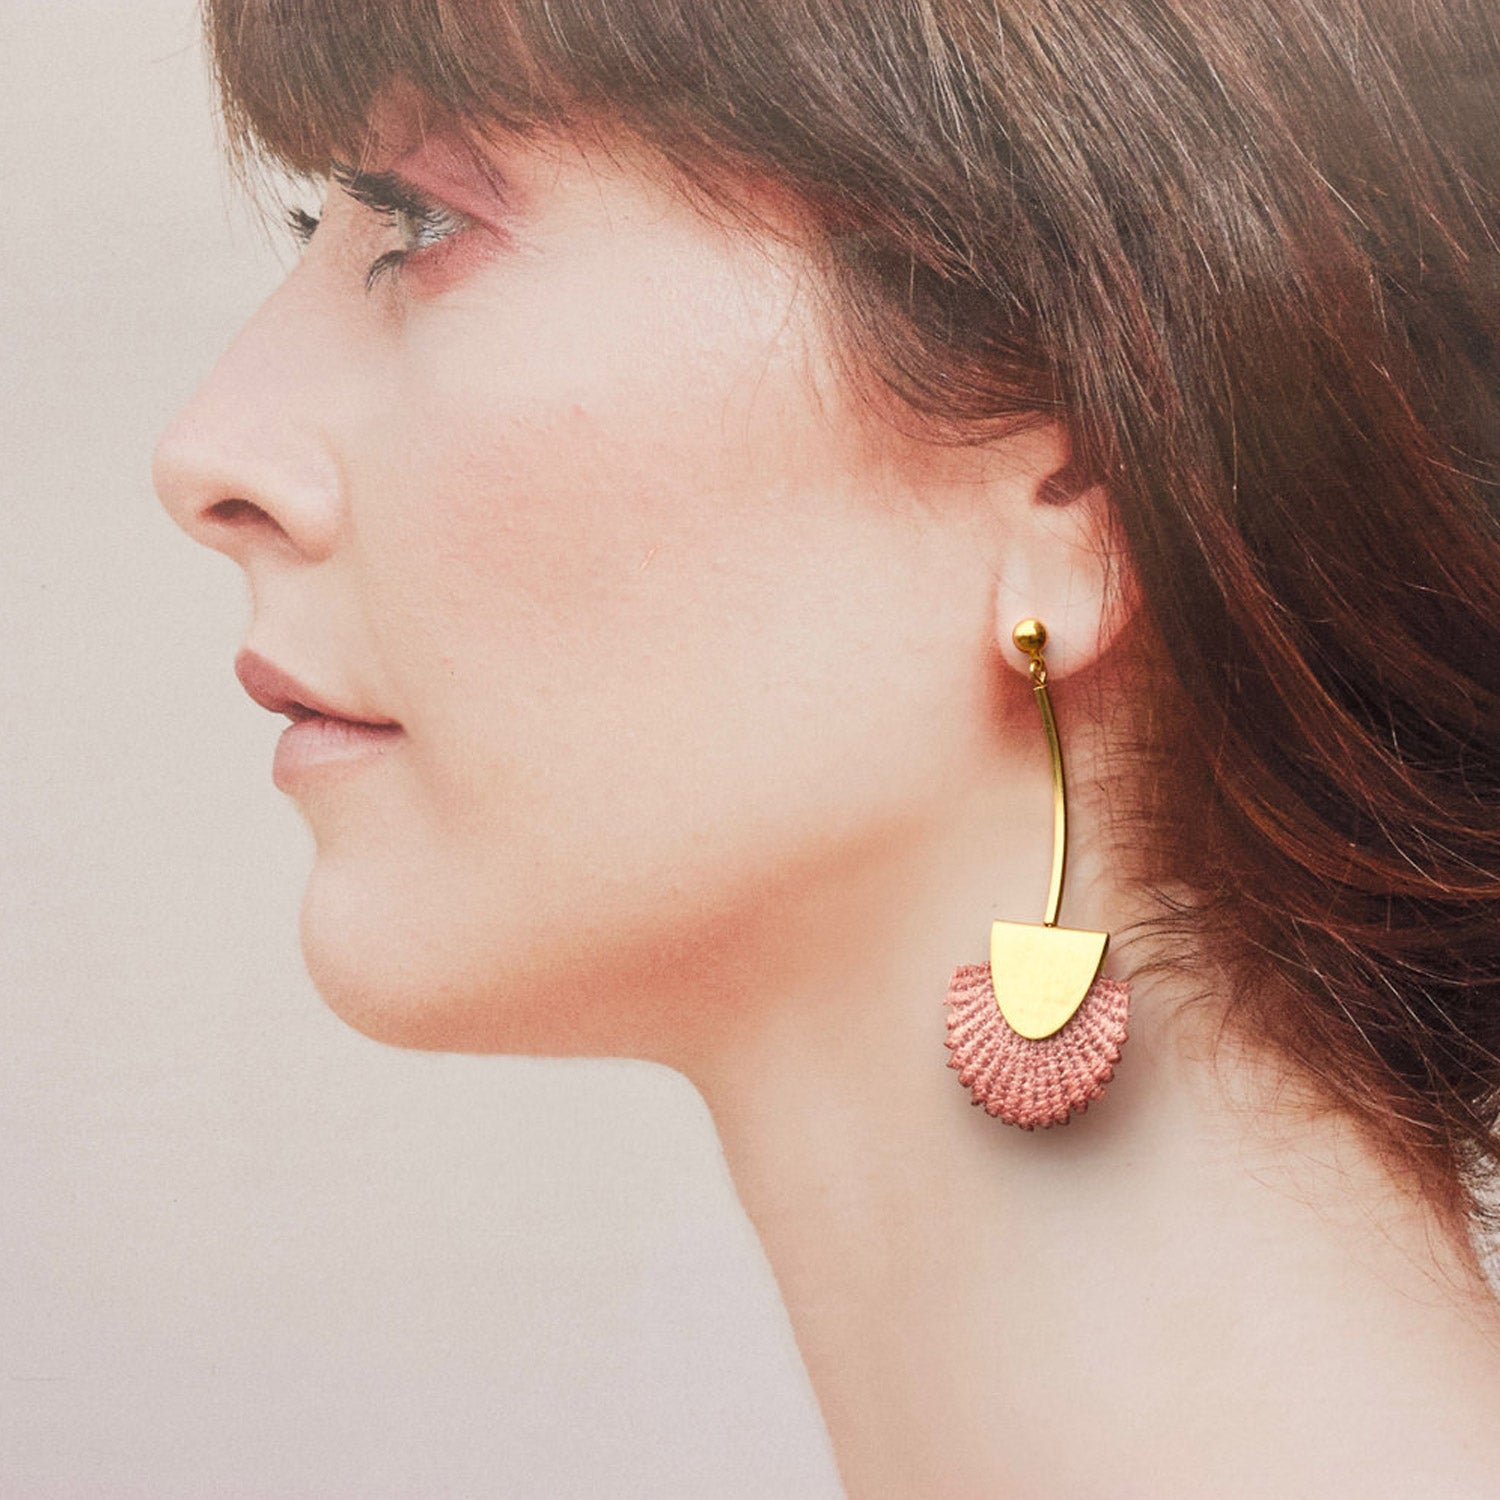 Desert Rose Palmas - Vintage Lace & Pure Brass Earrings - Sold by Chic & Basta